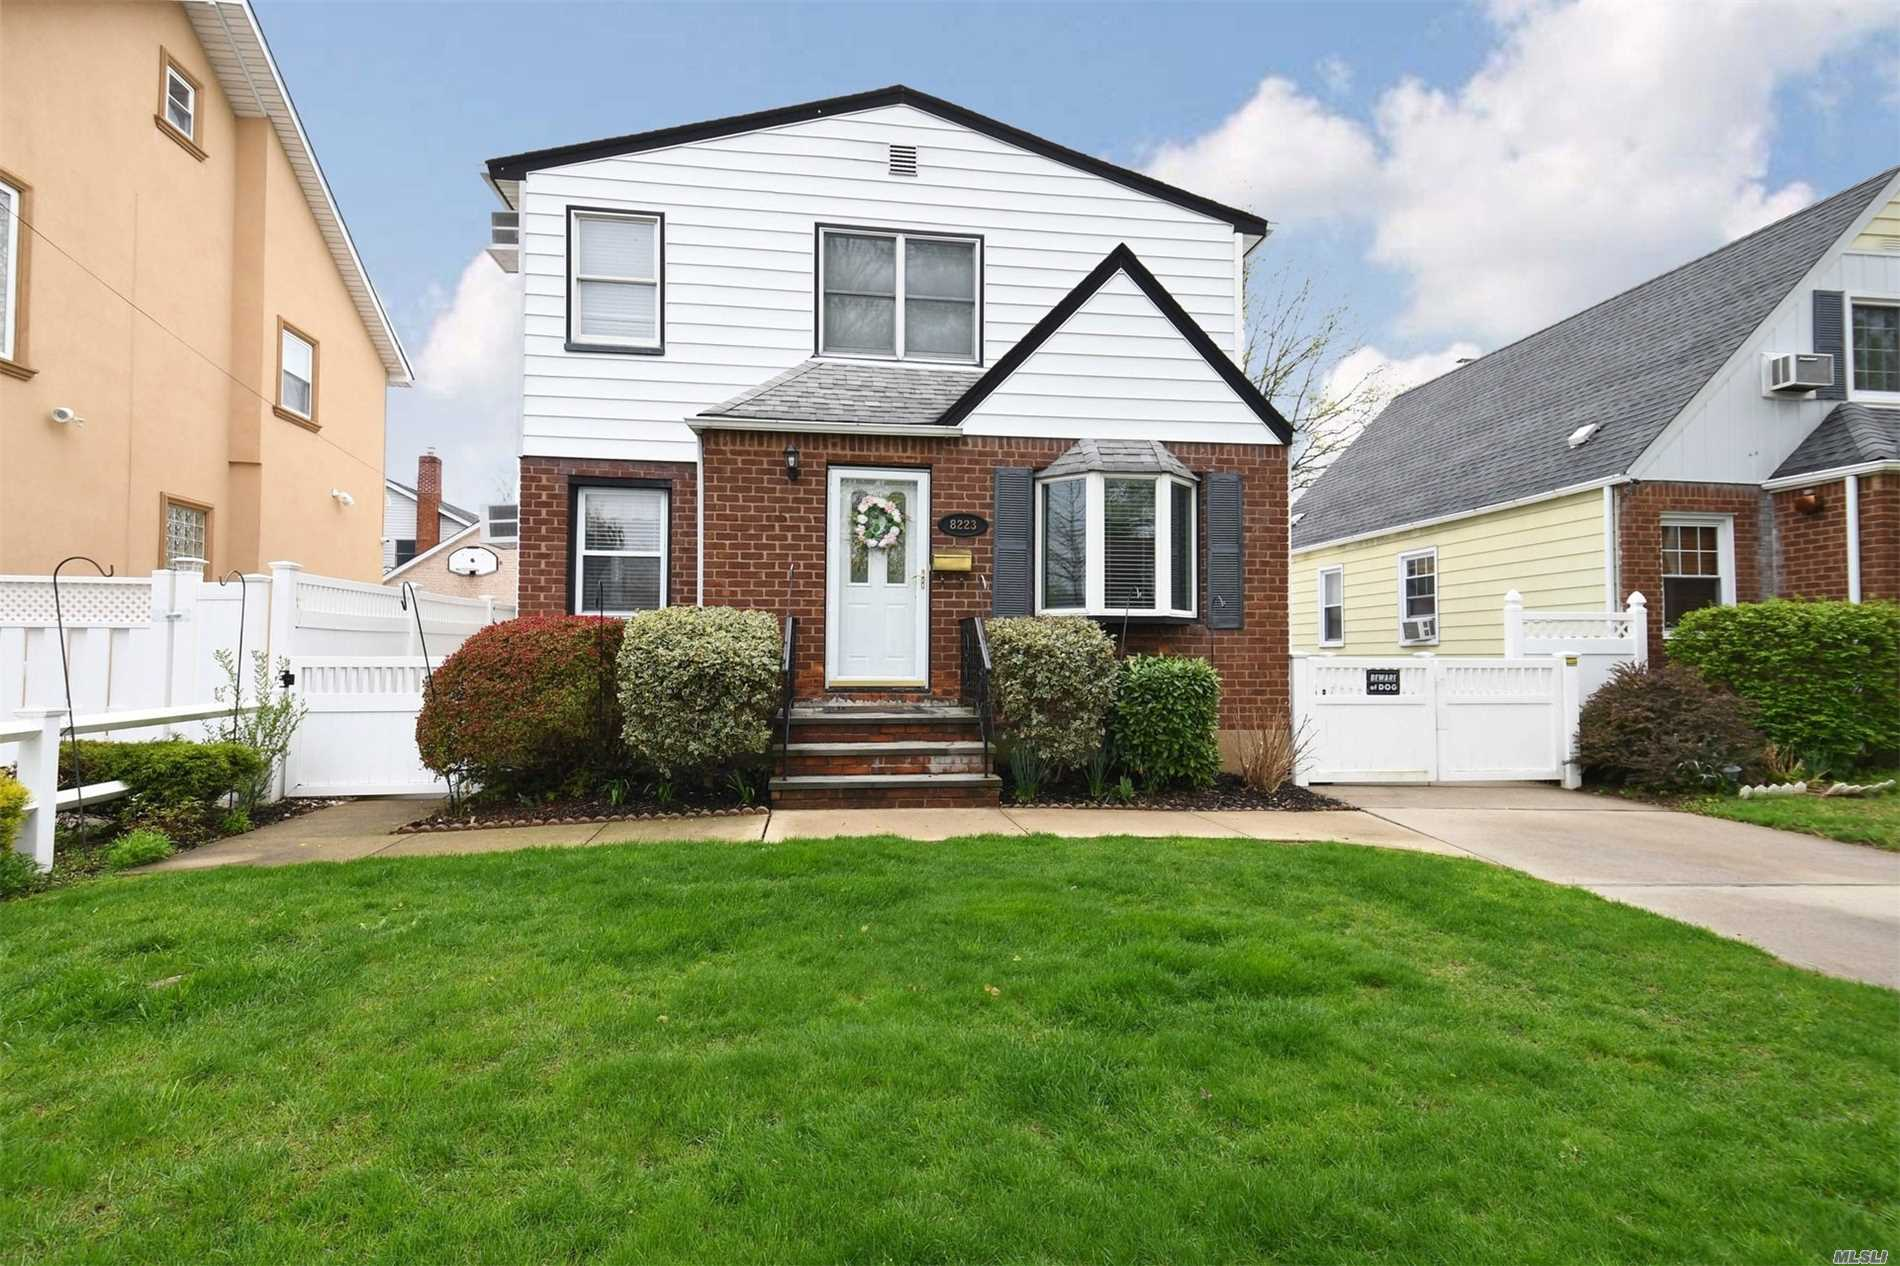 Expanded fully dormered cape with 4/5 bedrooms(2 masters)and 2.5 baths, finished basement and 2 car garage. Wood floors on first floor only. Mid-block location, close to shopping, Hillside Ave and Union Tnpk buses, School District 26. Possible mother/daughter with proper permits.